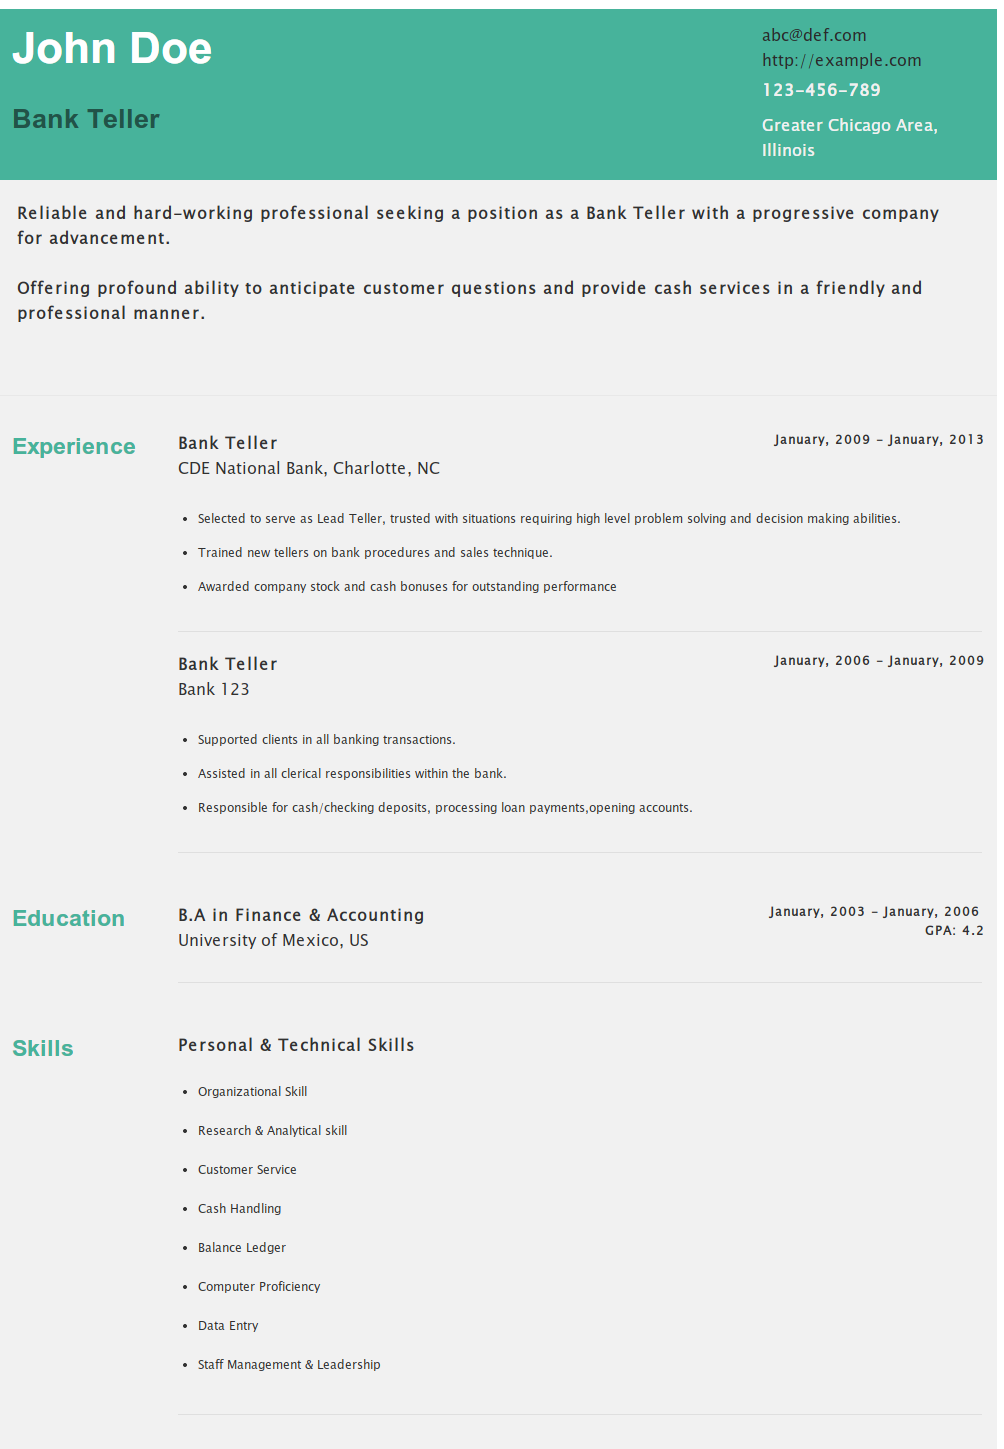 Resume Of Bank TellerPersonal Banker HttpsHipcvComAbcRBank